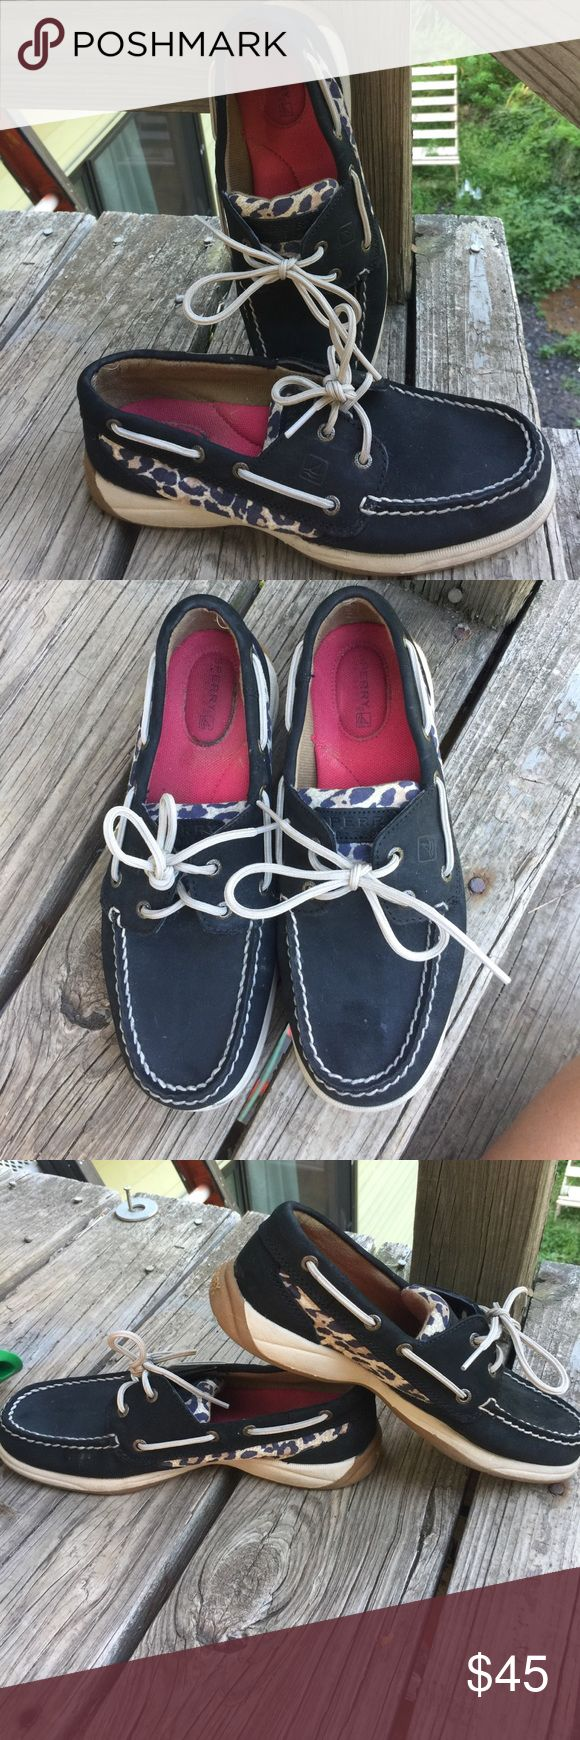 Black leopard Sperry Intrepid boat shoes Like new condition! Worn once! Black leopard Intrepid boat shoes. Sperry Top-Sider Shoes